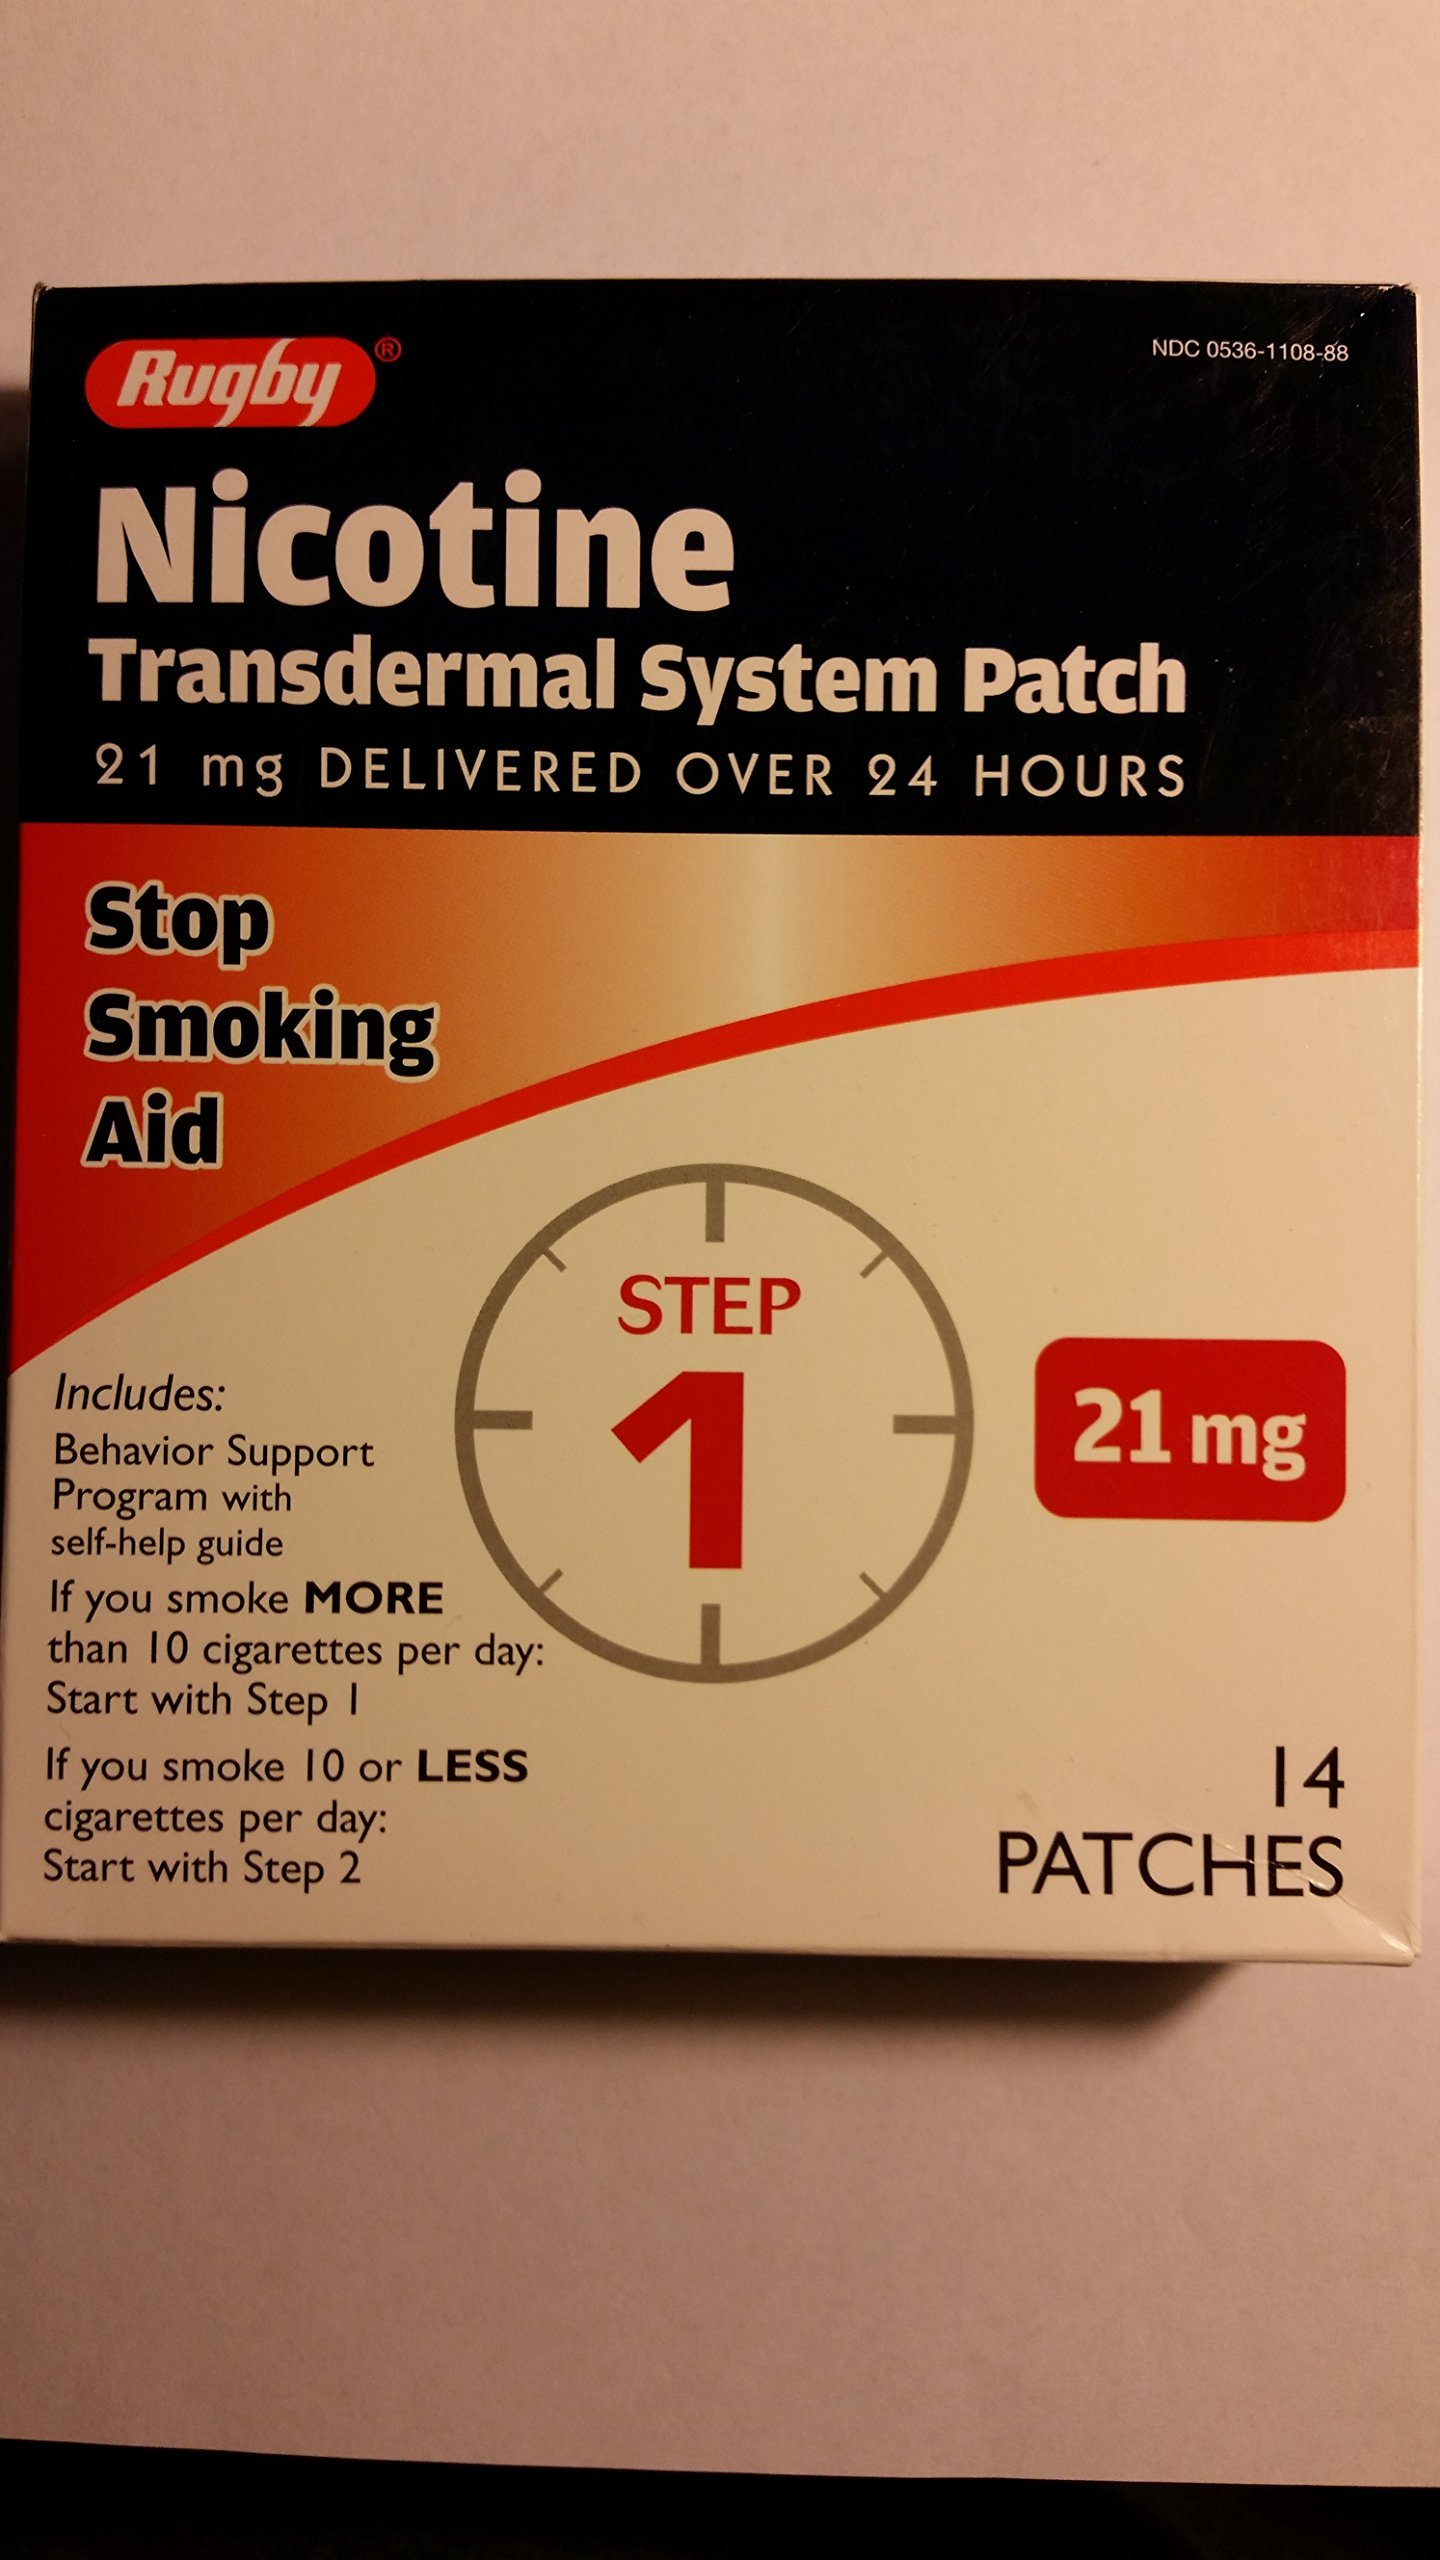 Amazon.com: Rugby Nicotine Transdermal System Opaque Patch Step 1 Stop  Smoking Aid 21 mg 14 Patches: Health & Personal Care